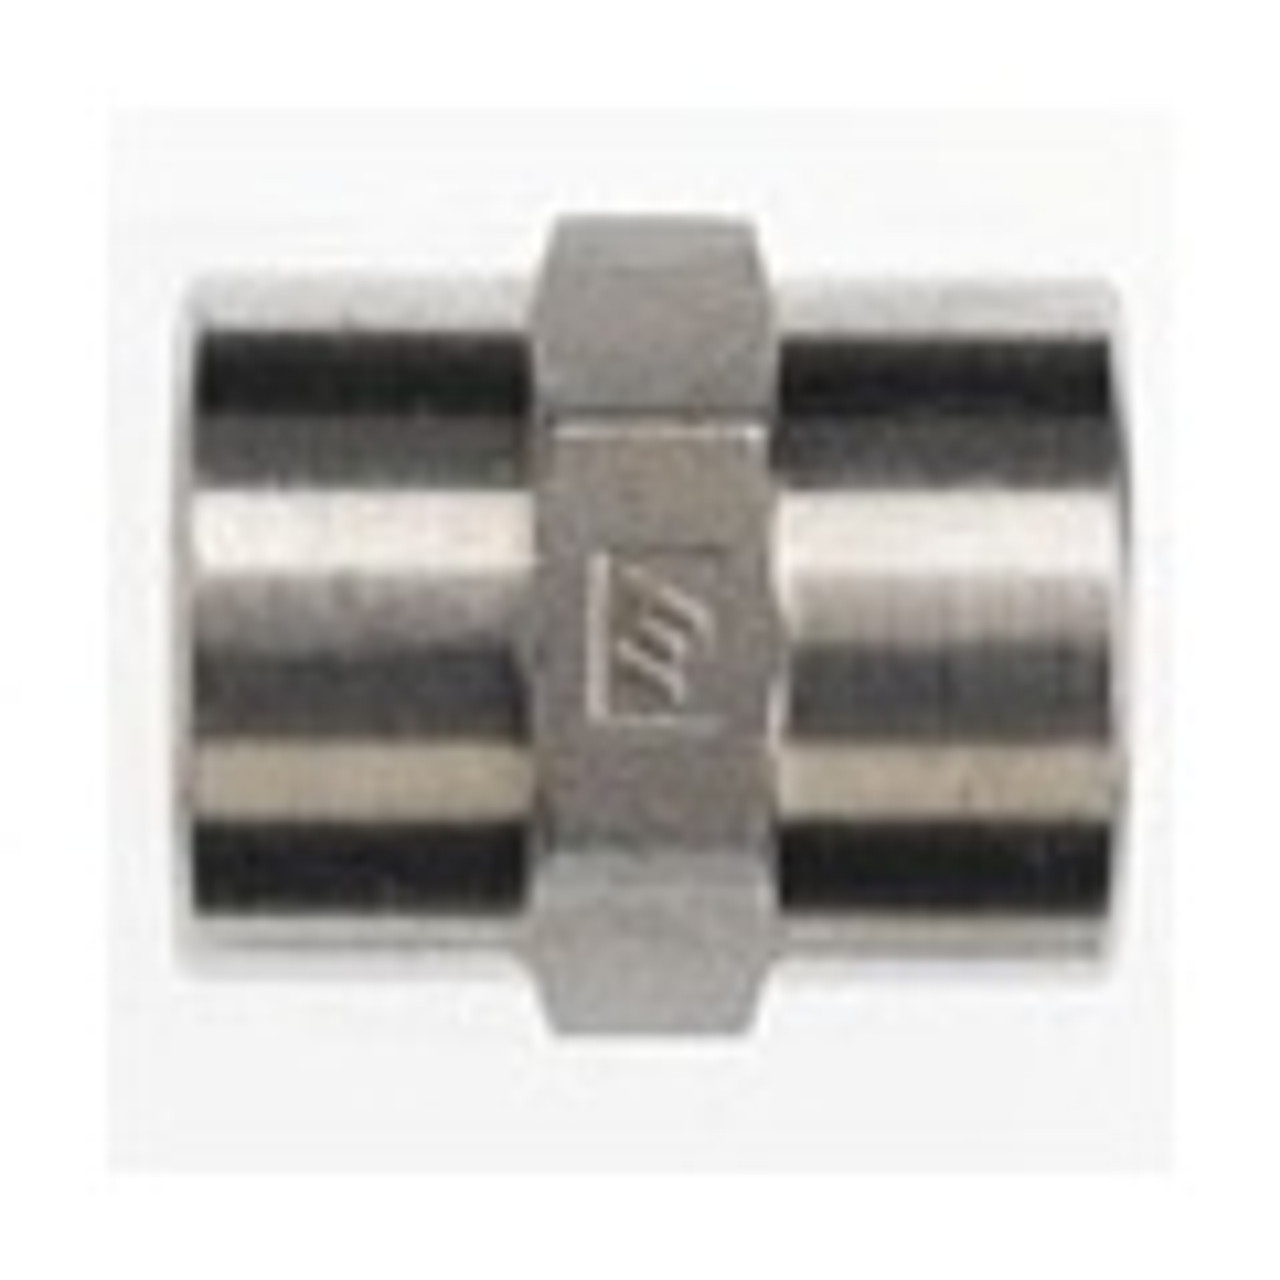 3/8 NPT Female Barrel